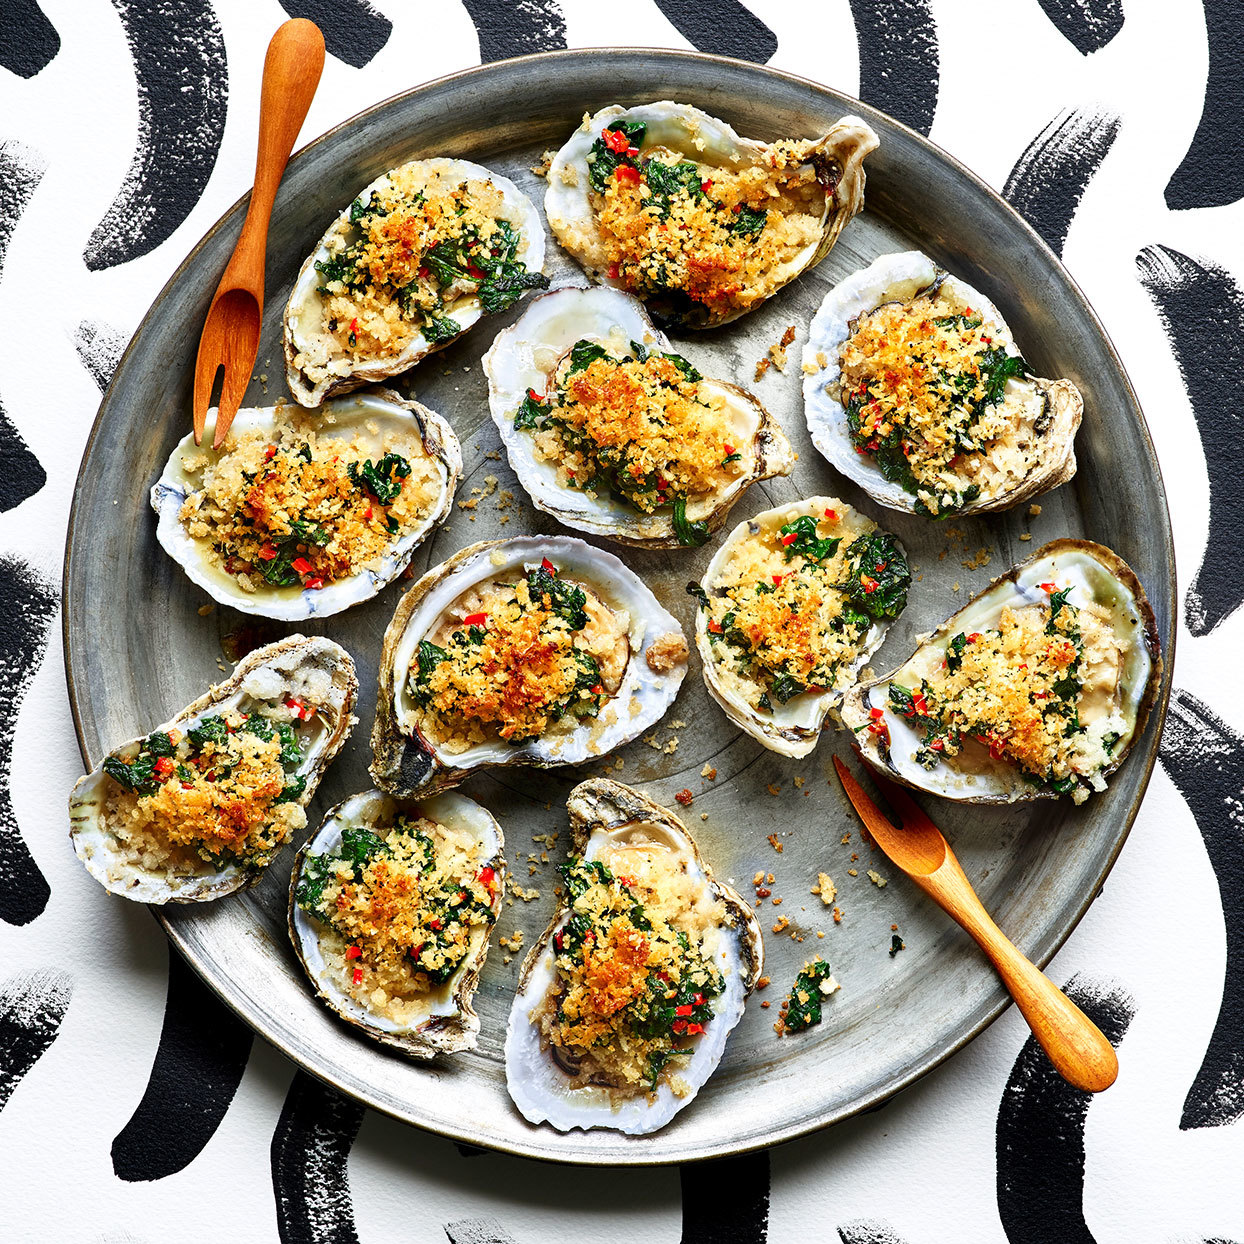 Oysters au Gratin with Spinach and Breadcrumbs